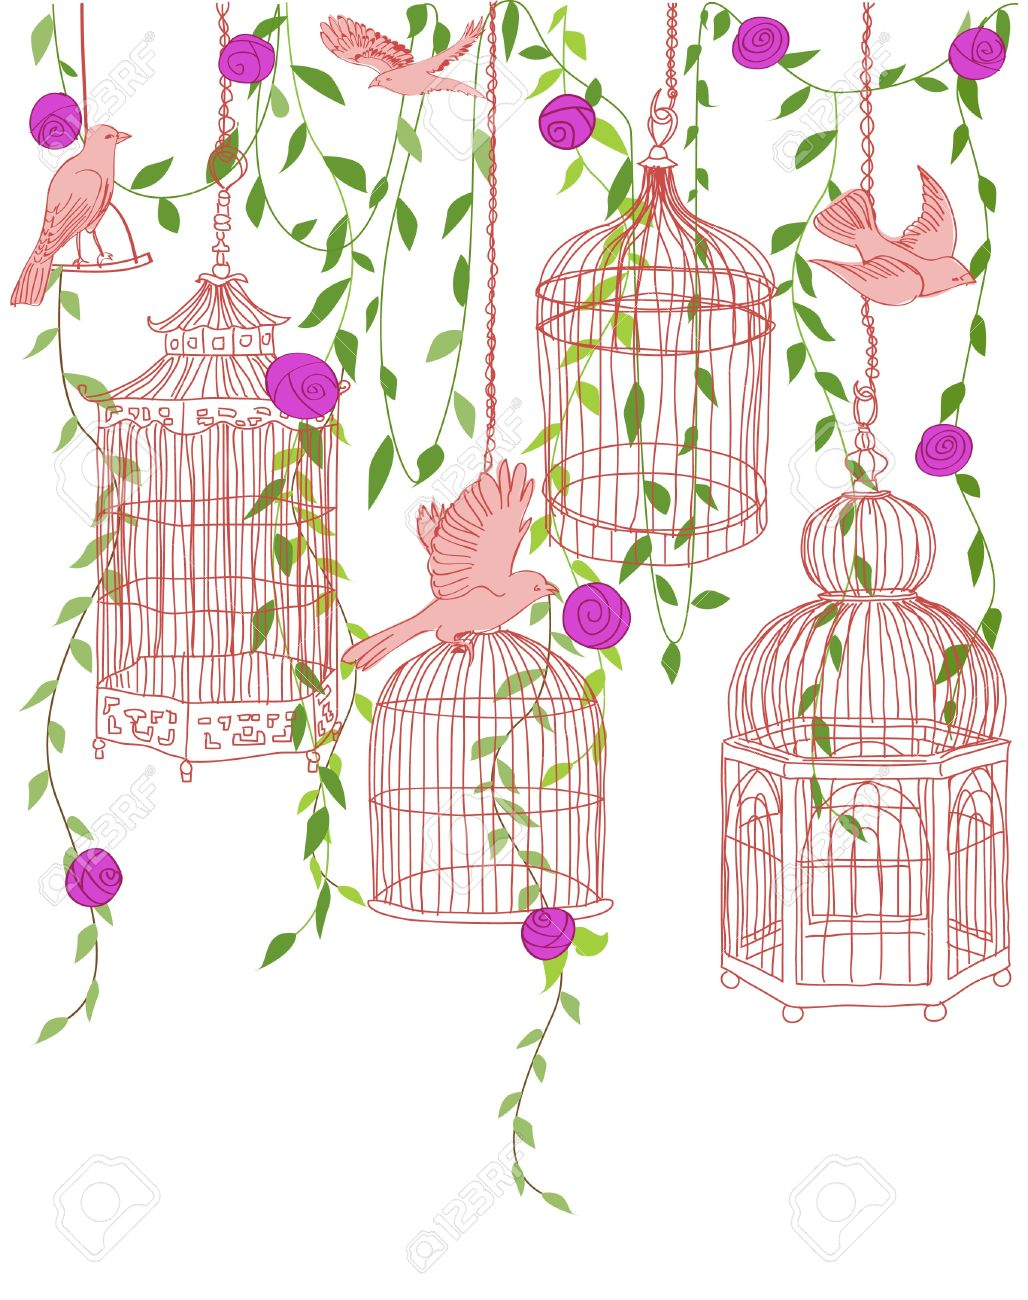 Hand-drawn illustration of a rose garden with birds and ornate cages Stock Vector - 12402990